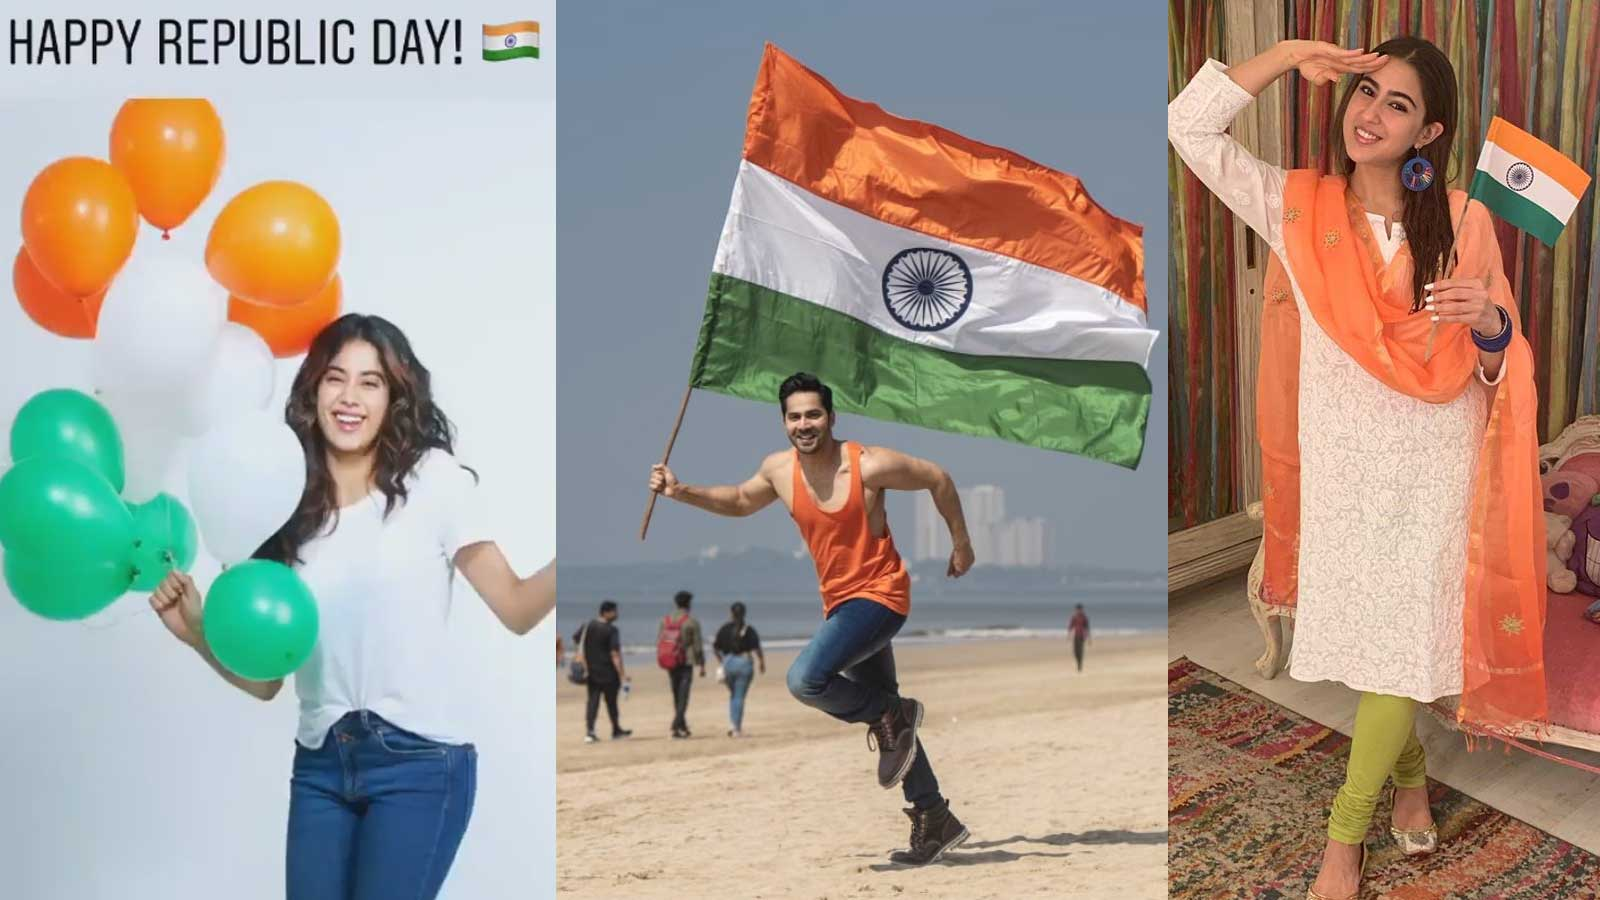 republic-day-2020-shah-rukh-khan-amitabh-bachchan-janhvi-kapoor-sara-ali-khan-among-other-bollywood-celebs-wish-fans